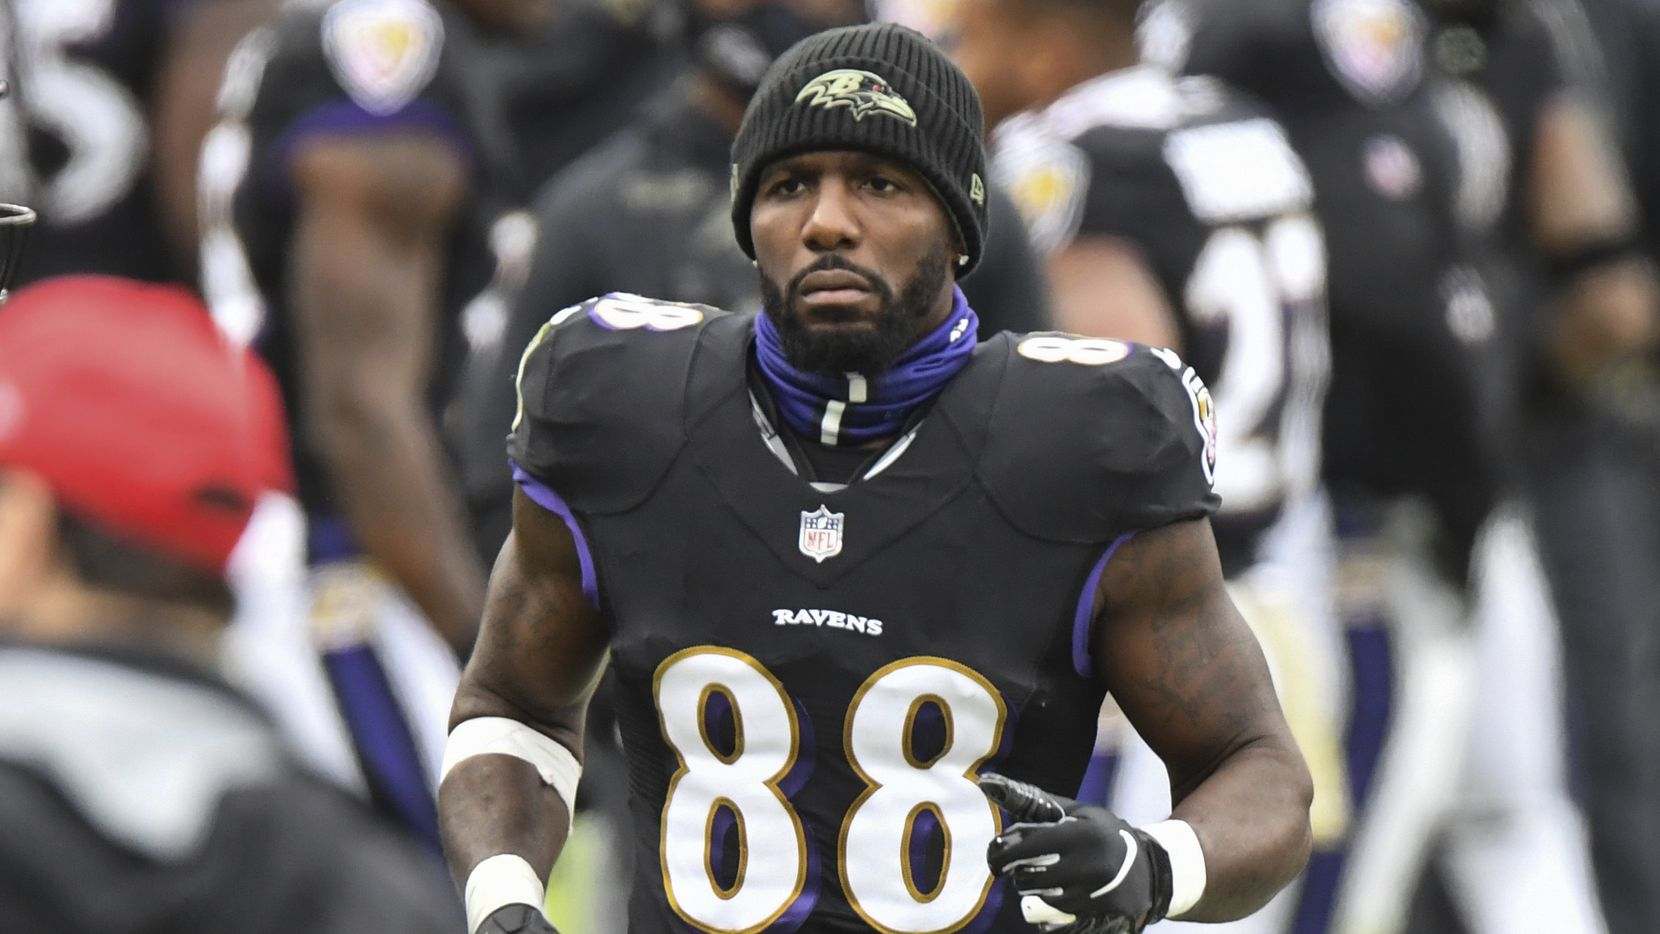 Baltimore Ravens wide receiver Dez Bryant (88) jogs along the sideline during the first half of an NFL football game against the Tennessee Titans, Sunday, Nov. 22, 2020, in Baltimore.